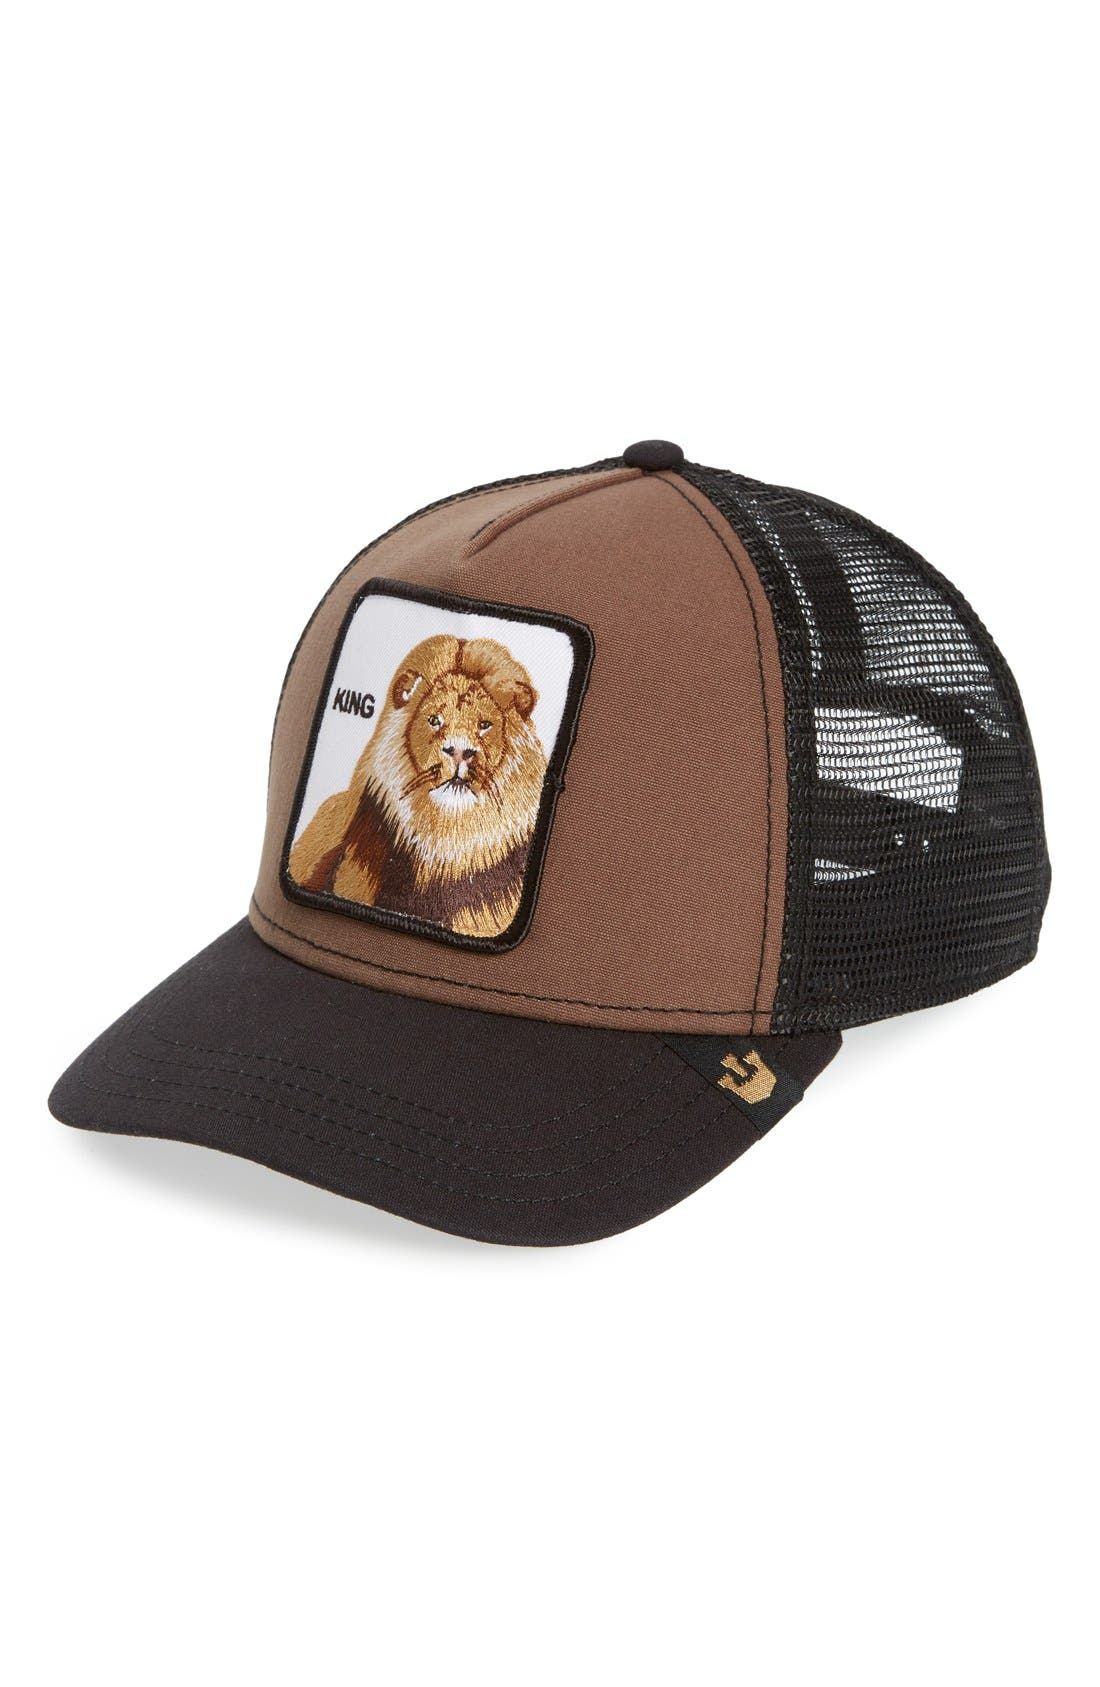 'Animal Farm - King' Trucker Hat,                             Main thumbnail 1, color,                             Brown